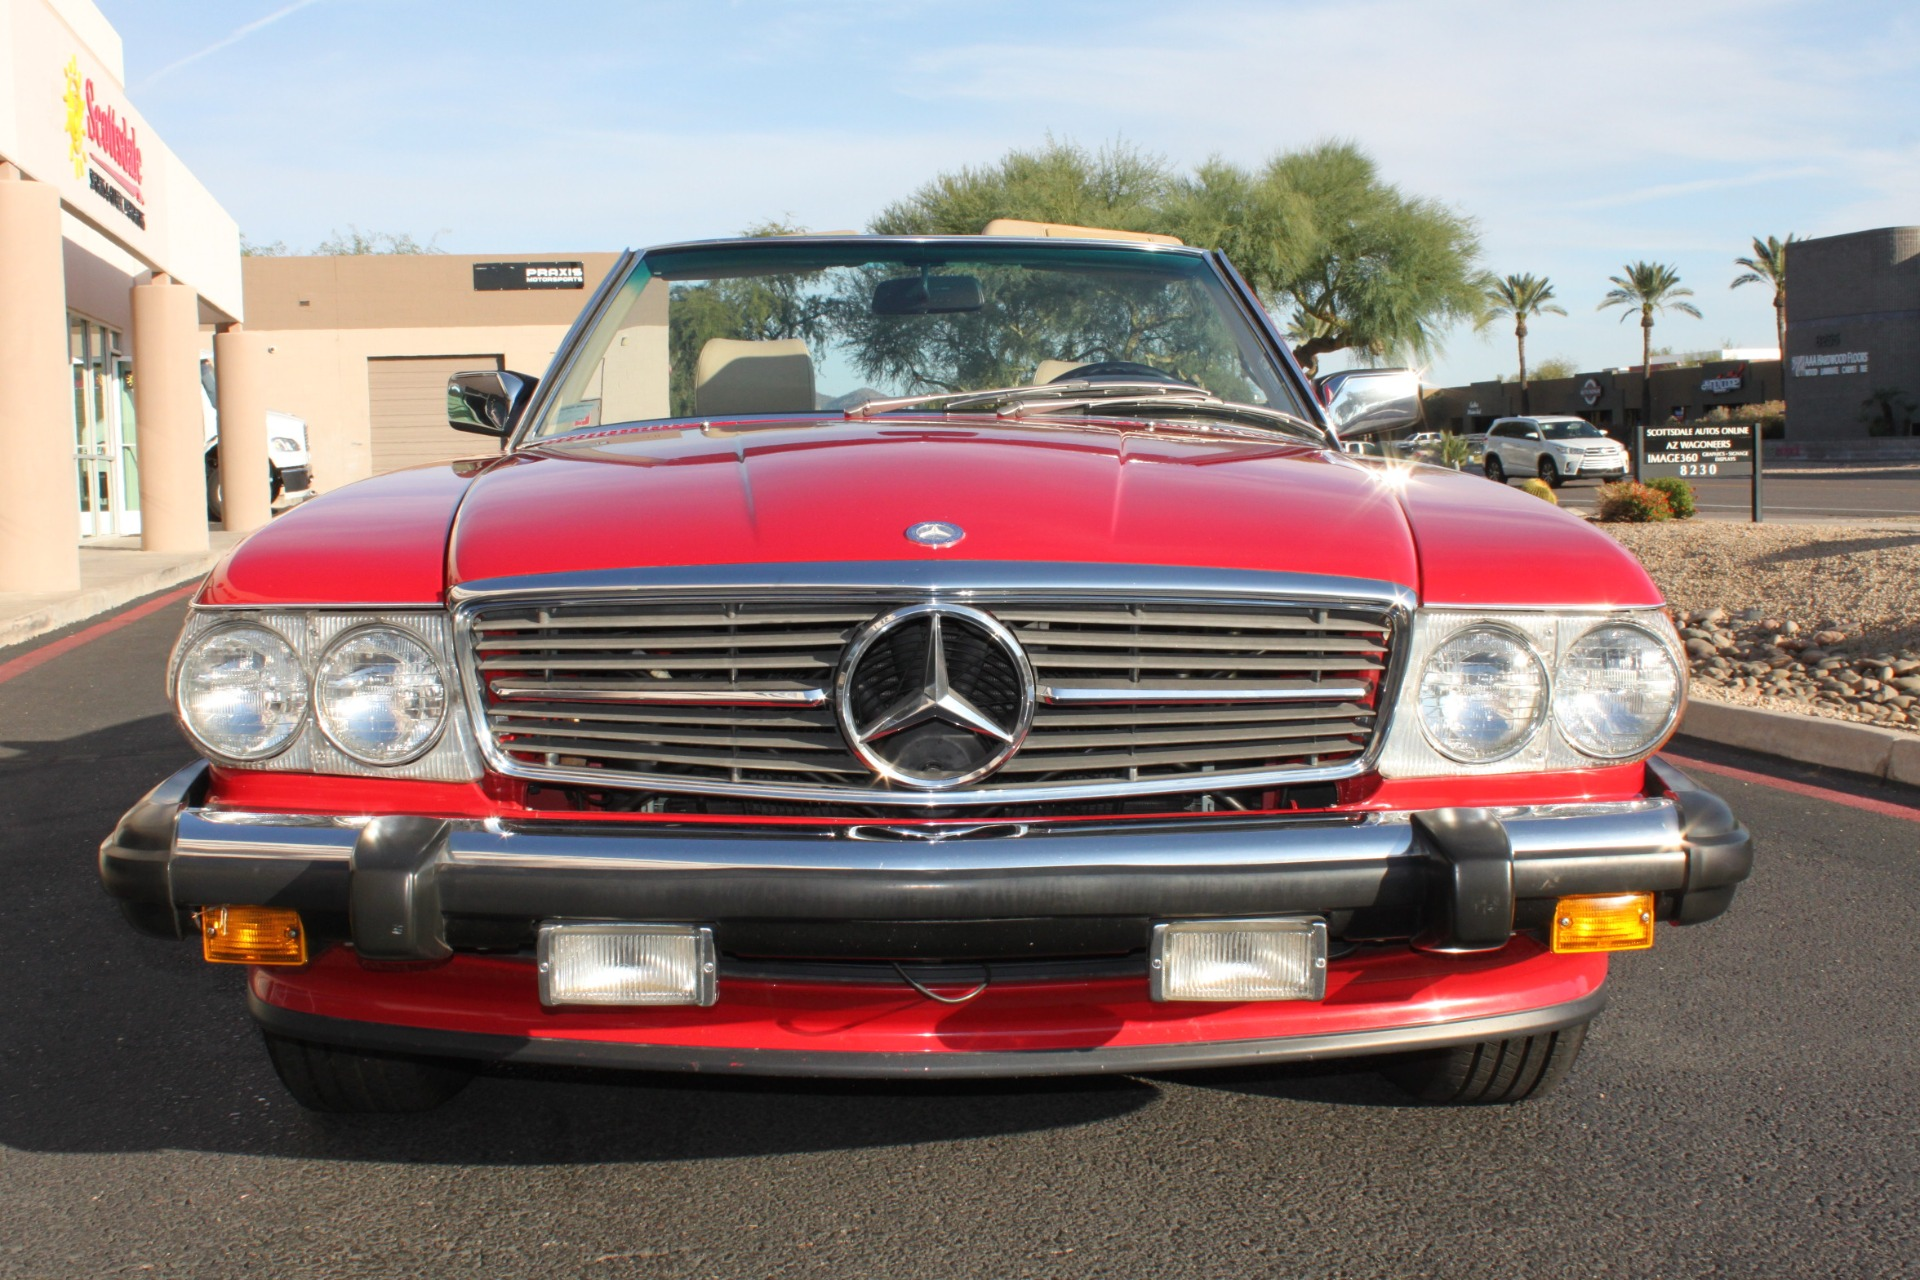 Used-1989-Mercedes-Benz-560-Series-560SL-Wrangler